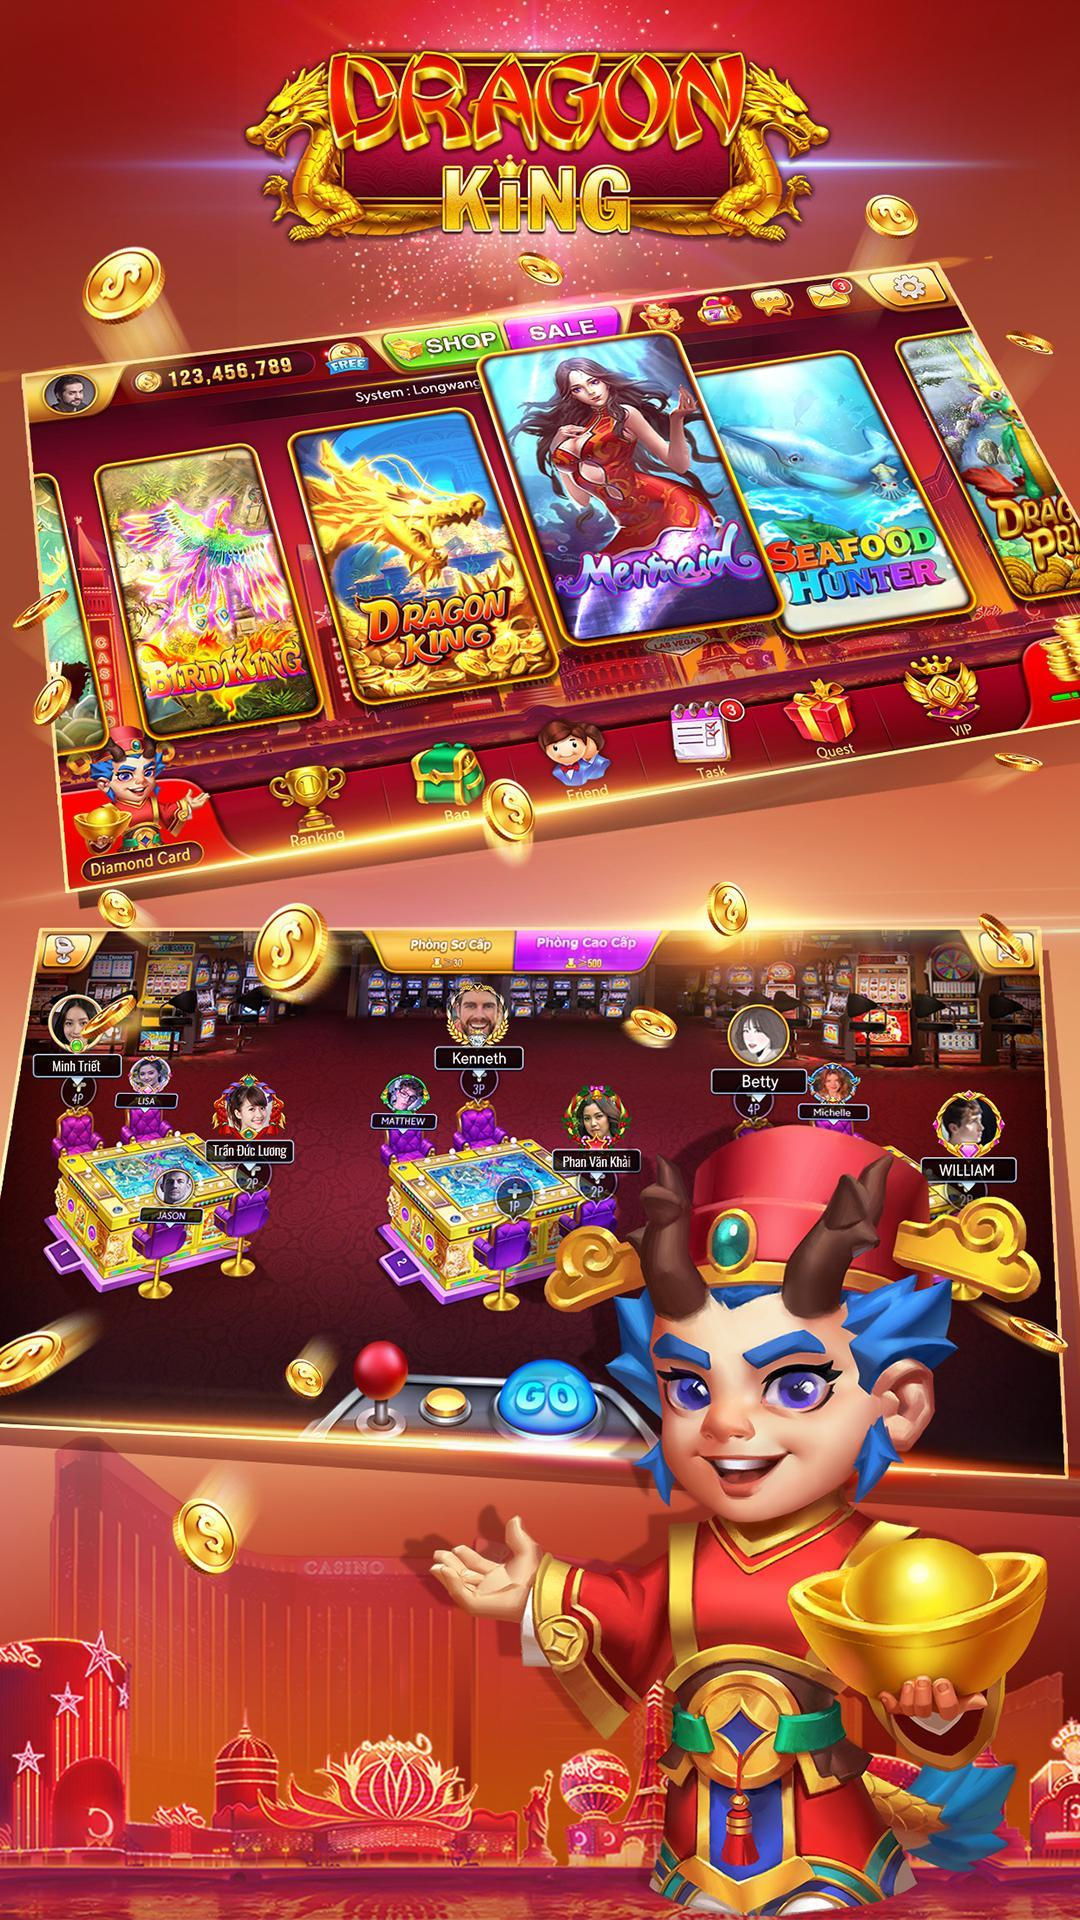 Dragon King Fishing Online-Arcade  Fish Games 5.2.0 Screenshot 1